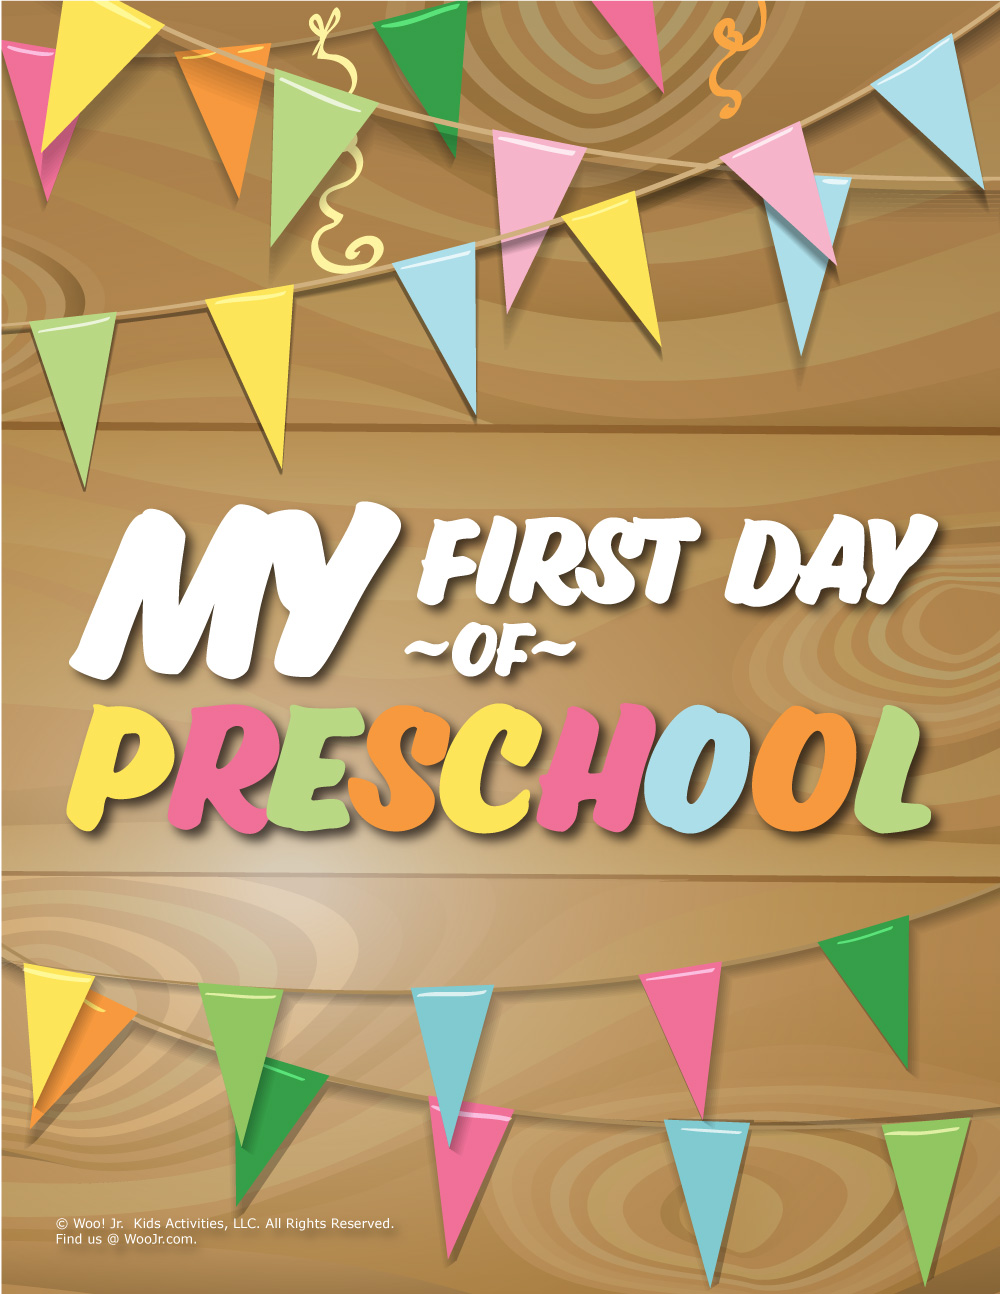 graphic about First Day of Preschool Printable referred to as To start with Working day of Preschool Signal - Wooden Woo! Jr. Youngsters Functions